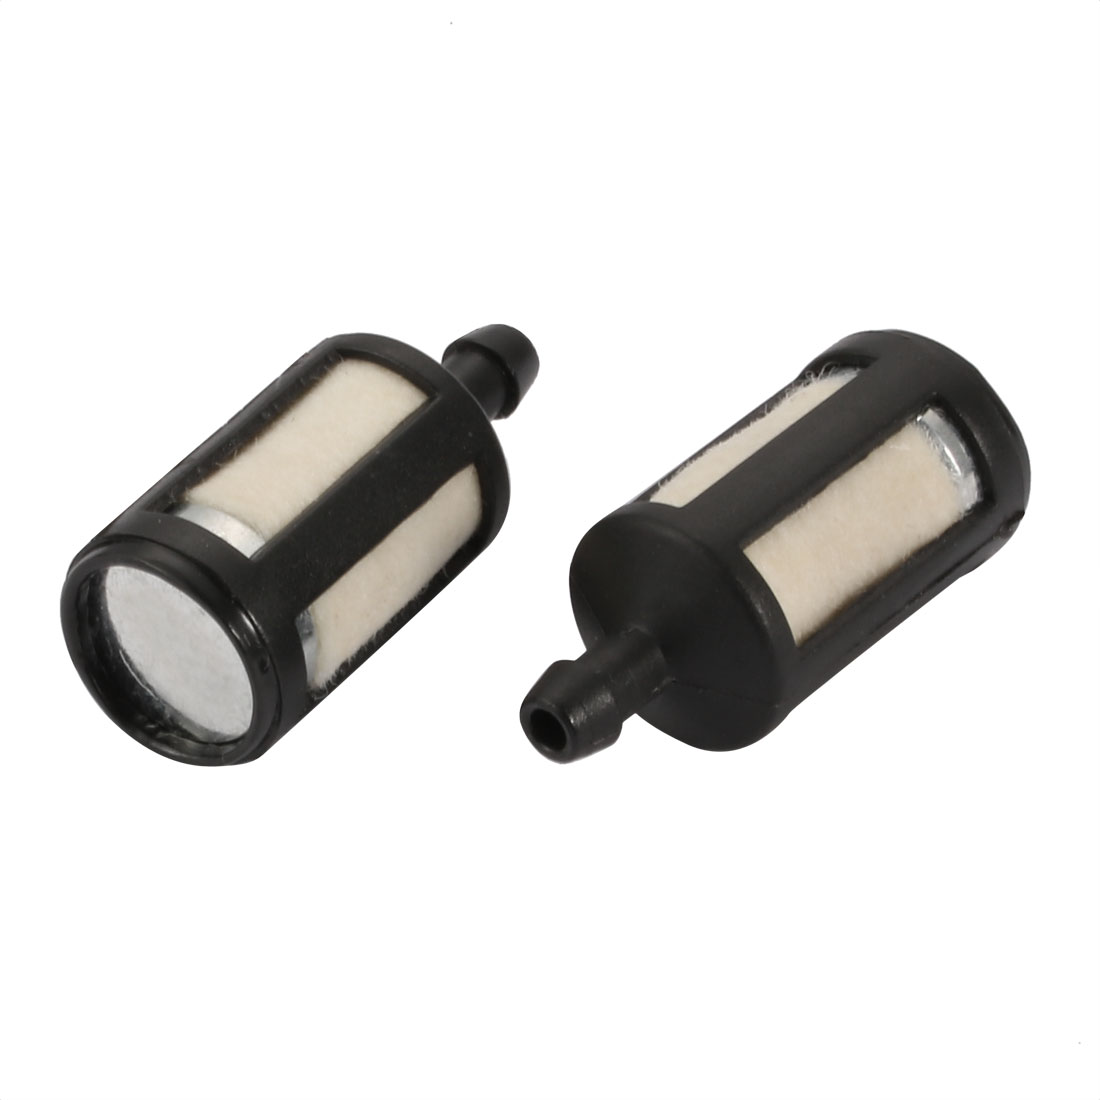 2Pcs Fuel Filter Replacement For 2029 Weedeater Chainsaw Trimmer Edger Blower